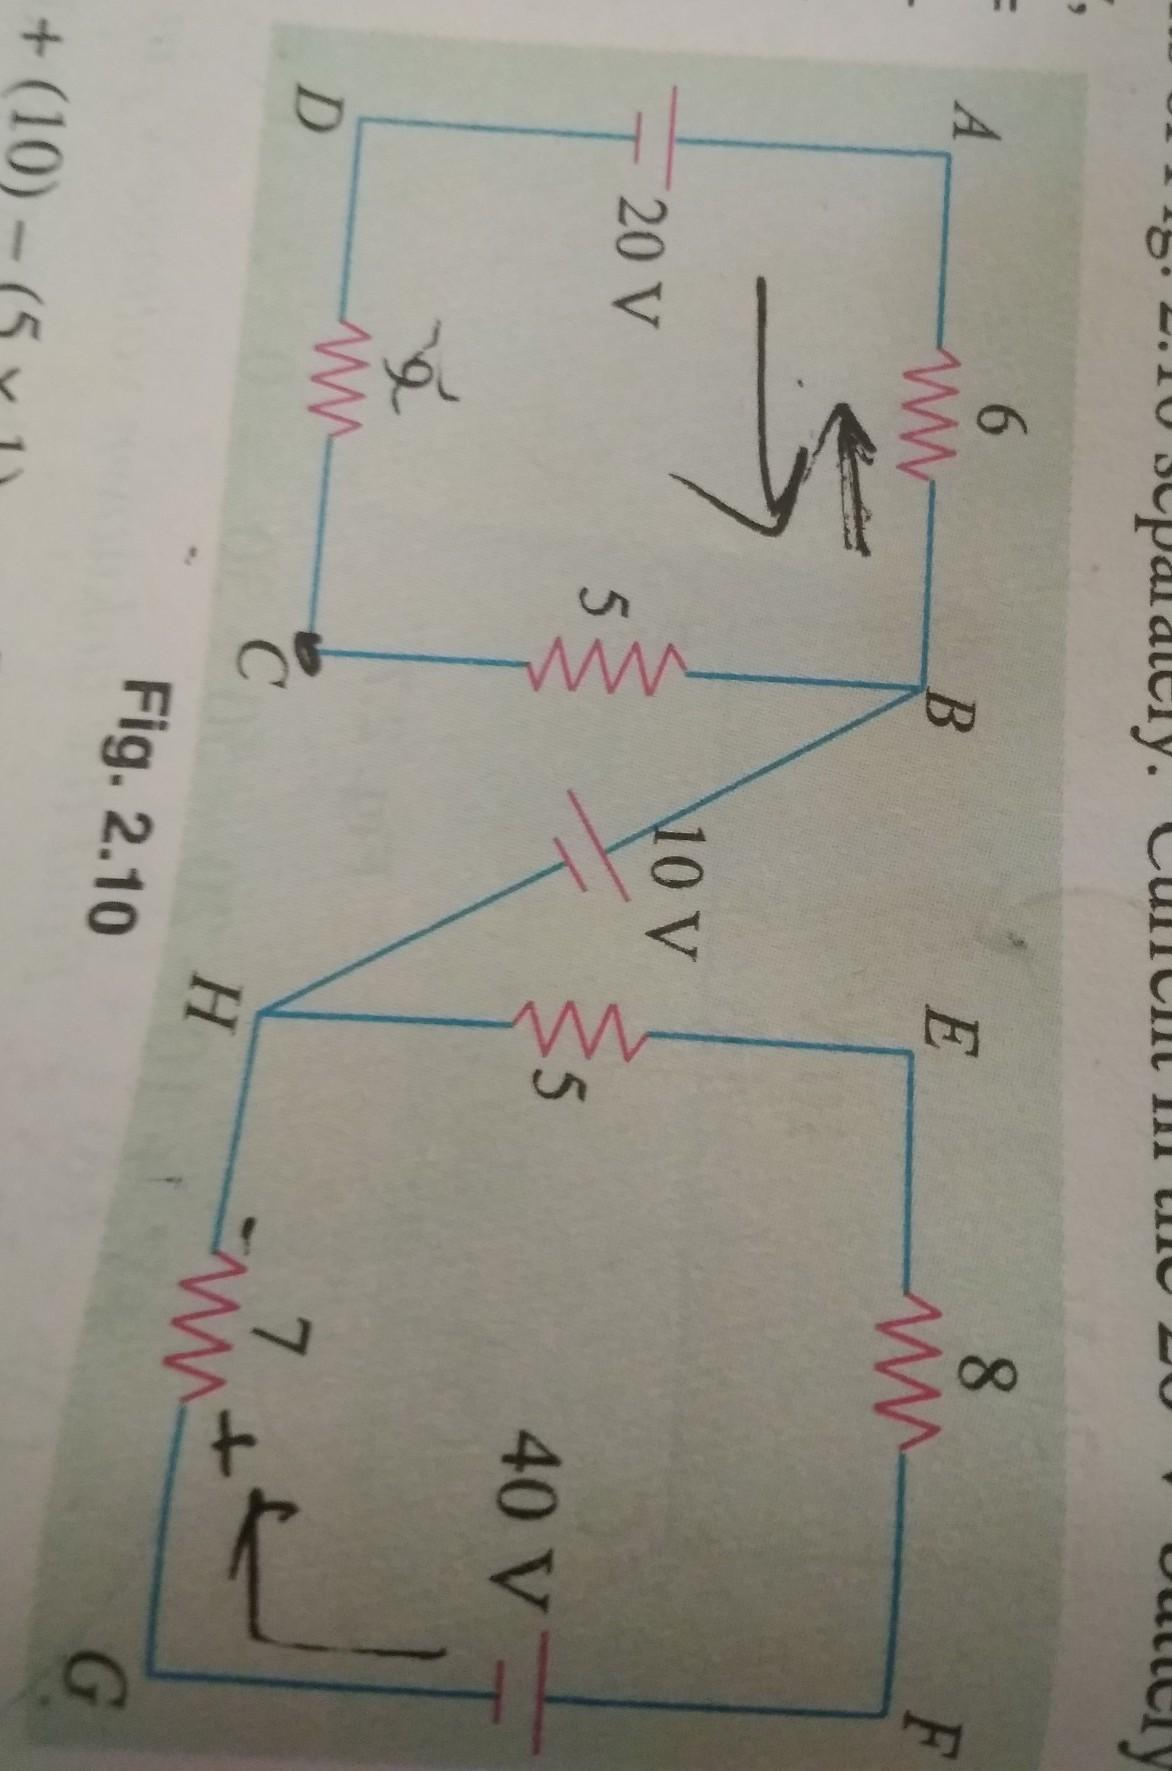 hight resolution of find vce and vag of the given circuit diagram br if u ans circuit diagram usb circuit diagram u